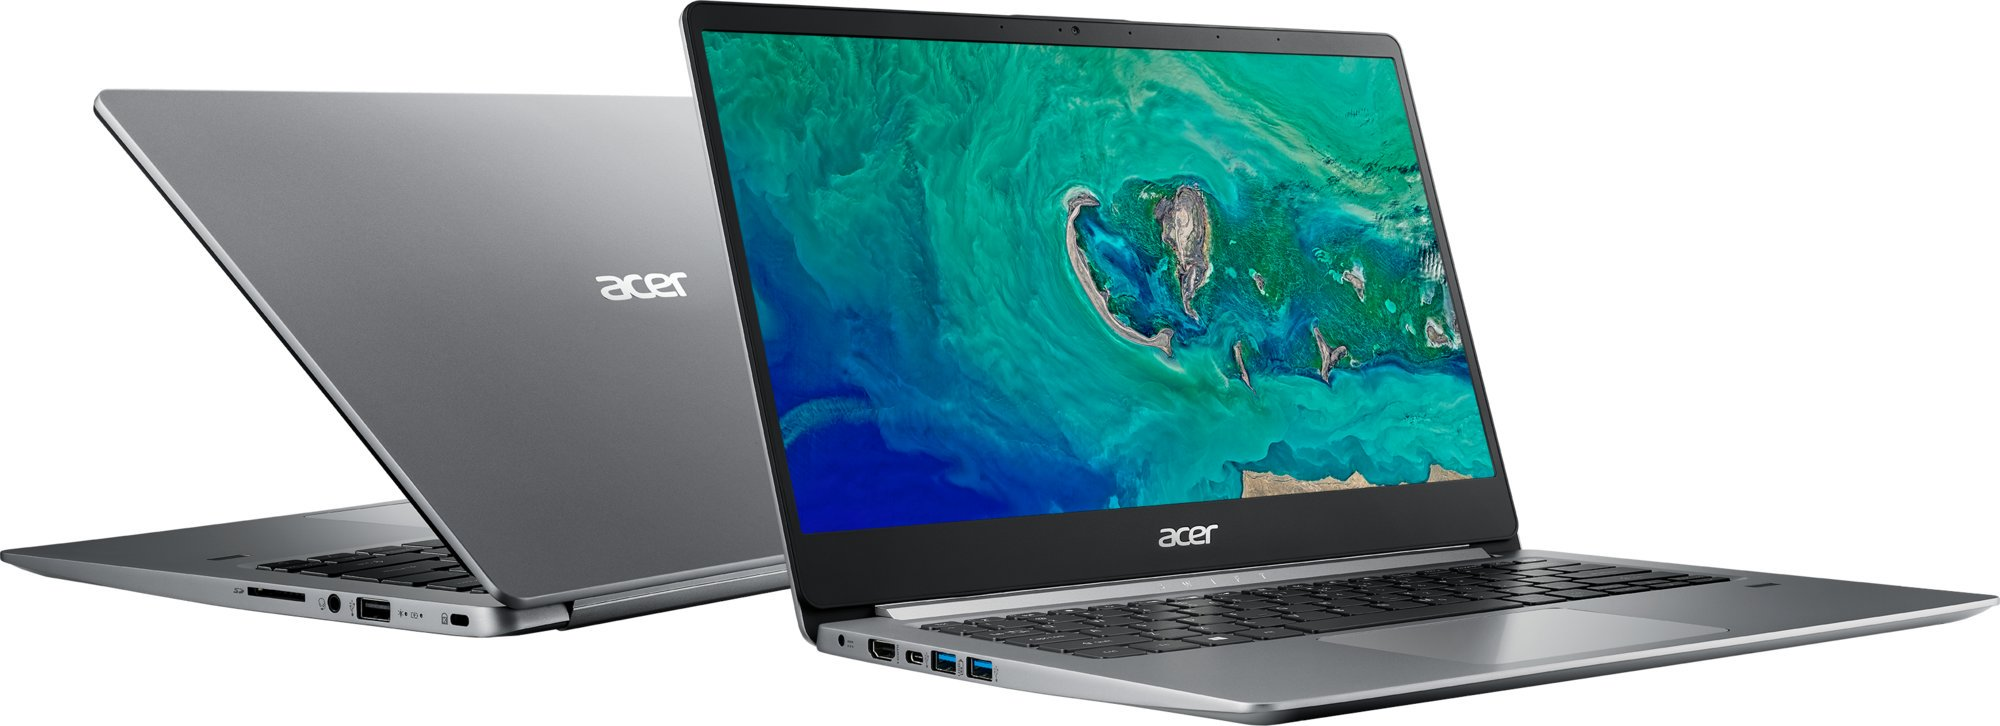 Acer Swift 1 SF114-32-P9PM